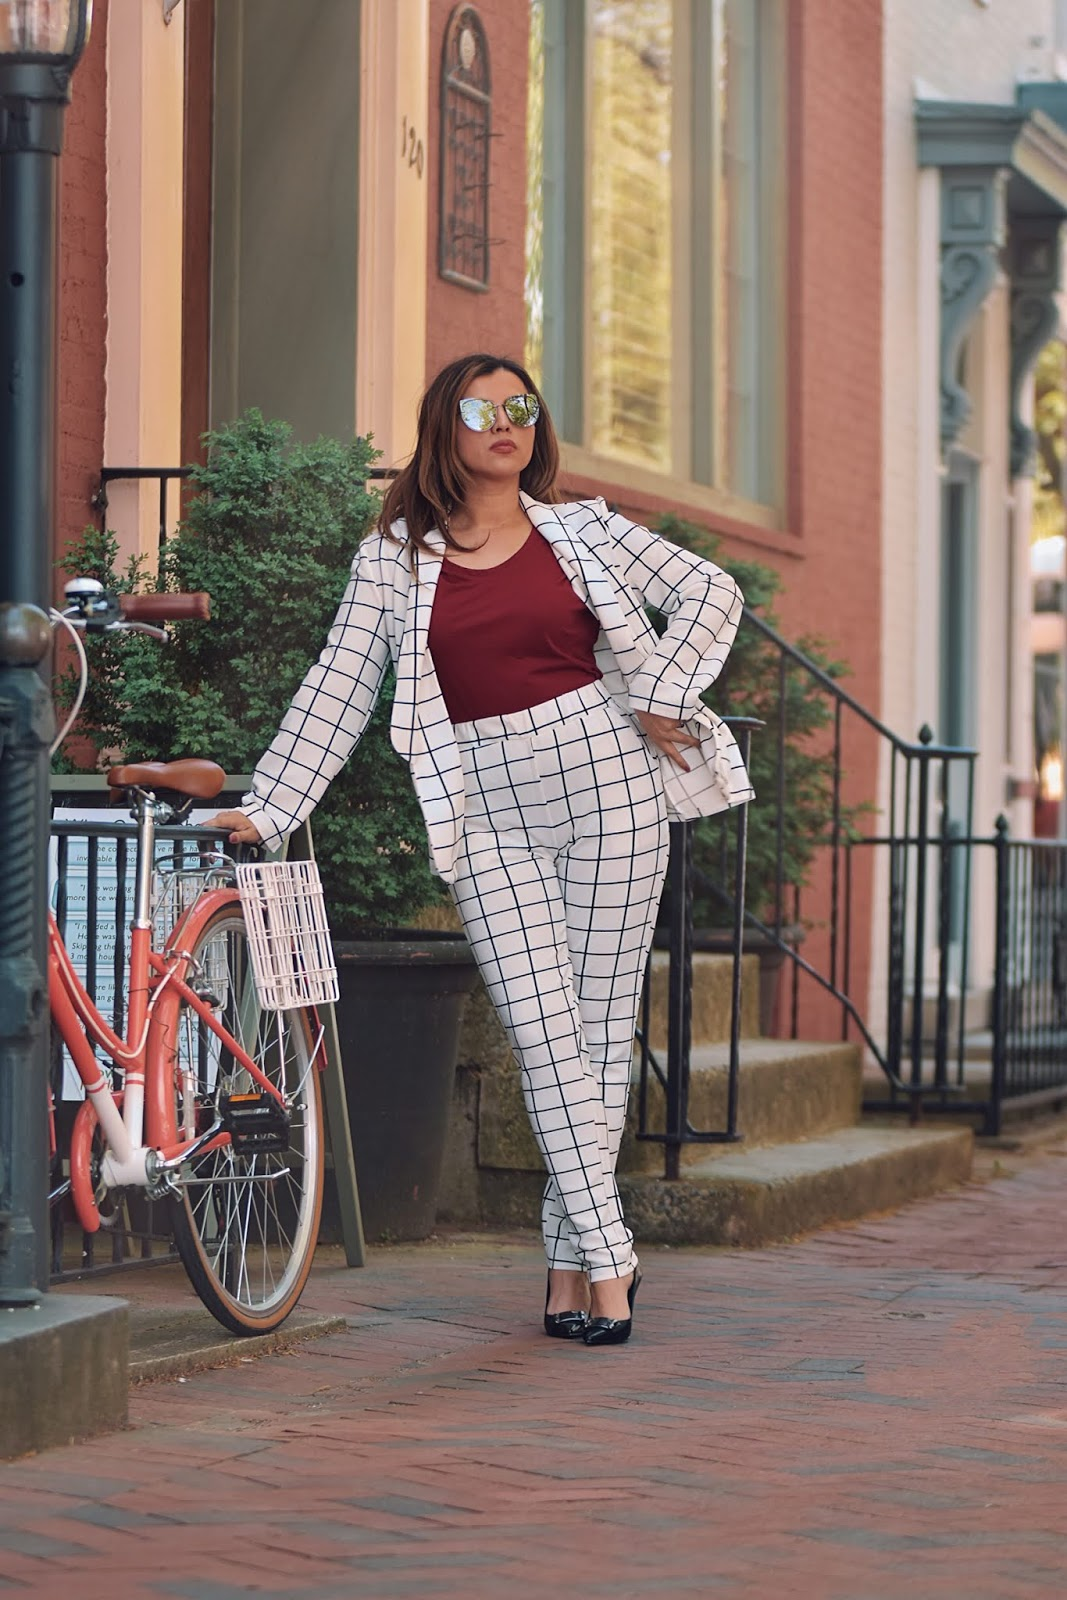 Outfit grid for stylish Girls-mariestilo-grid outfit-modaelsalvador-dcblogger-armandhugon-outfit para el trabajo-street style-blogger de moda-